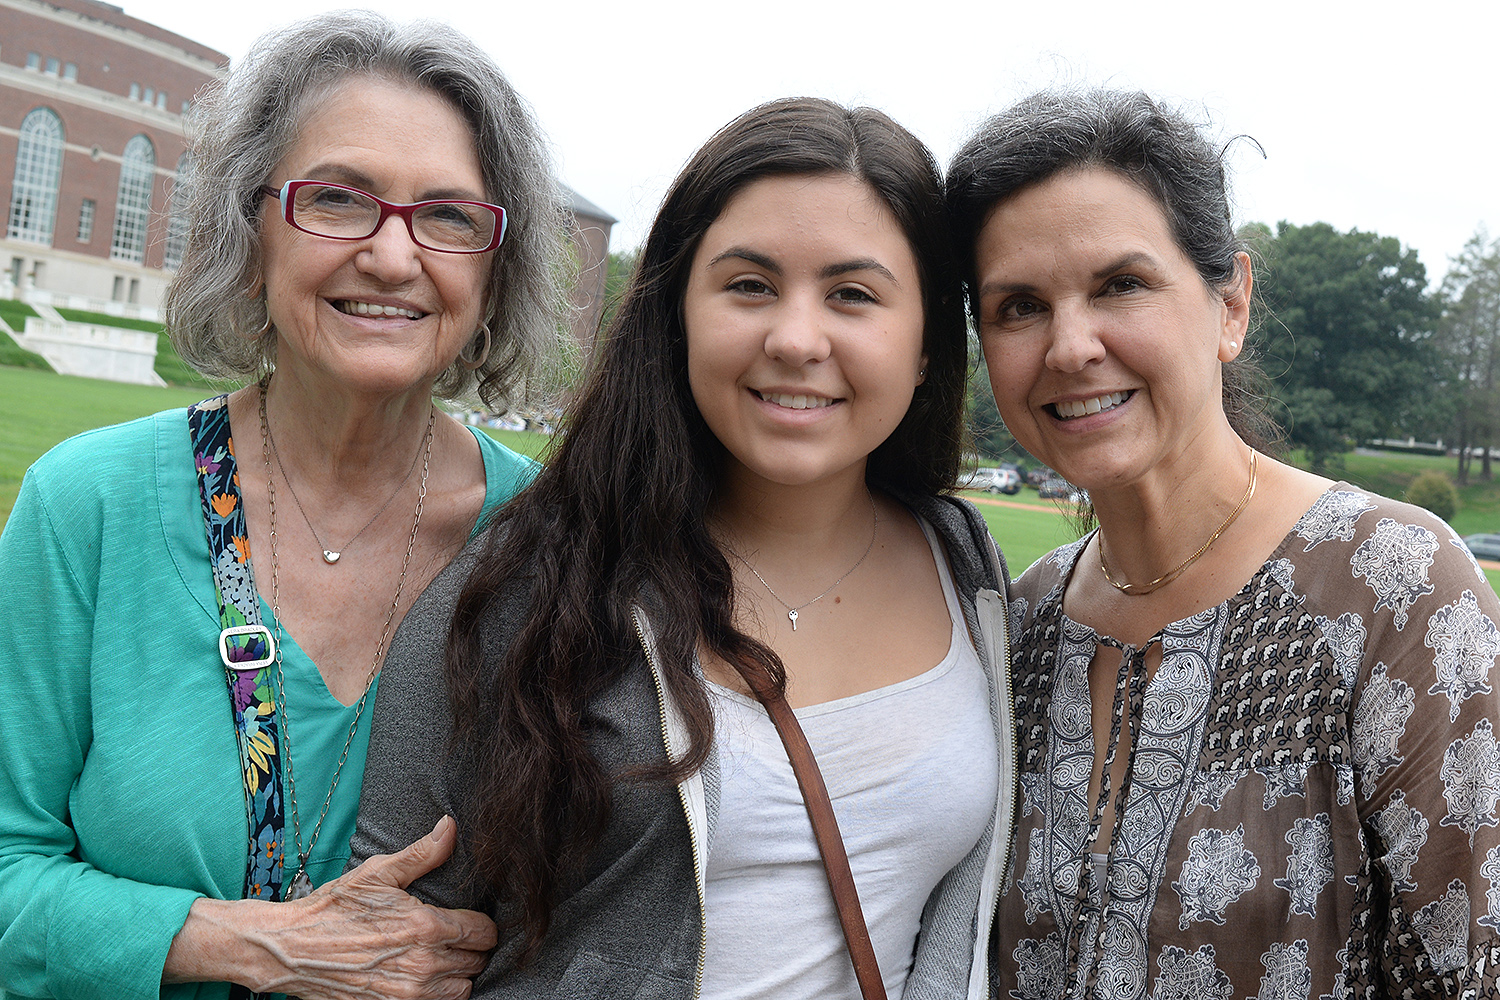 Lily Davis '20, center, from Portland, Ore., gets move-in help from her mother Gia Pitillo and grandmother Elizabeth Pitillo. Truly a special moment to see three generations on Arrival Day.